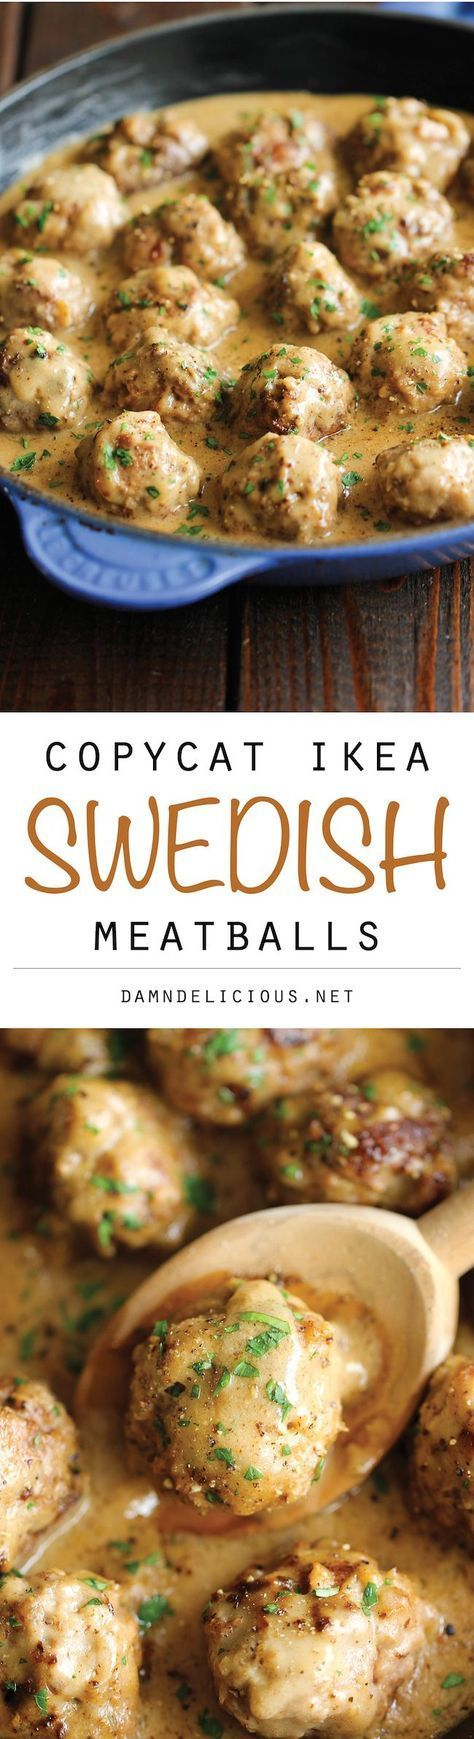 Swedish Meatballs: nothing beats homemade meatballs smothered in a creamy gravy sauce, and they taste much better than the IKEA version.